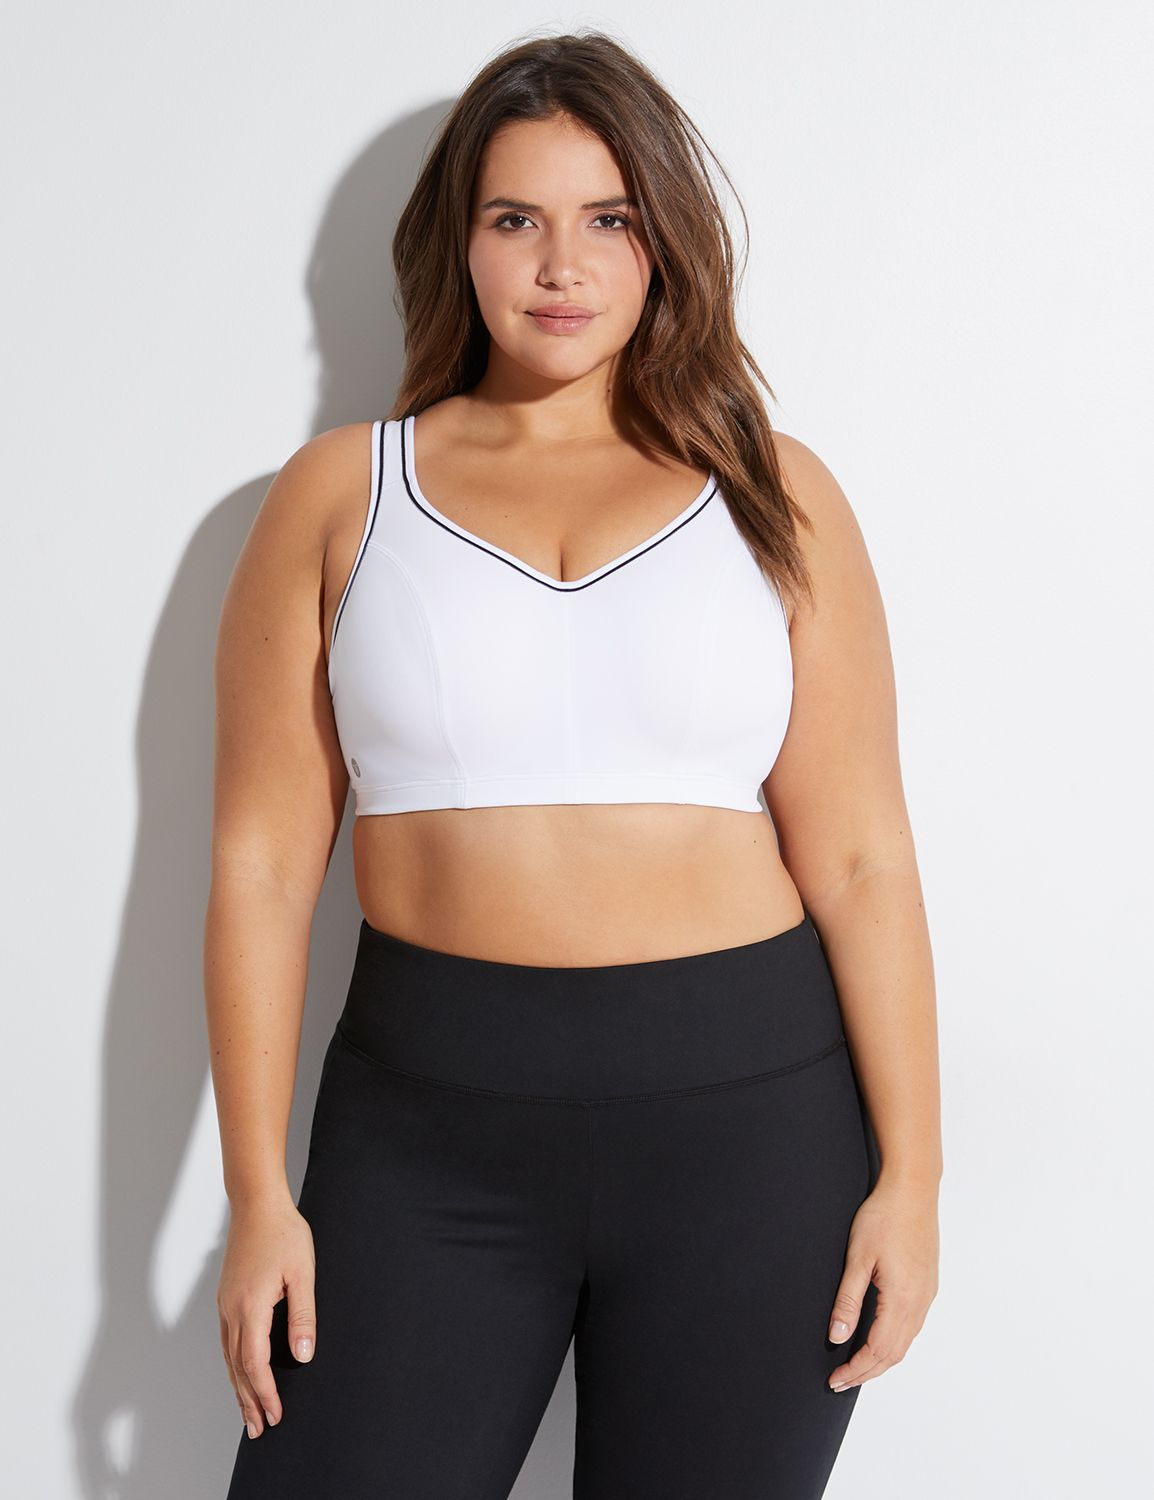 Lane Bryant Womens High-Impact Molded Underwire Sport Bra 44DDD White